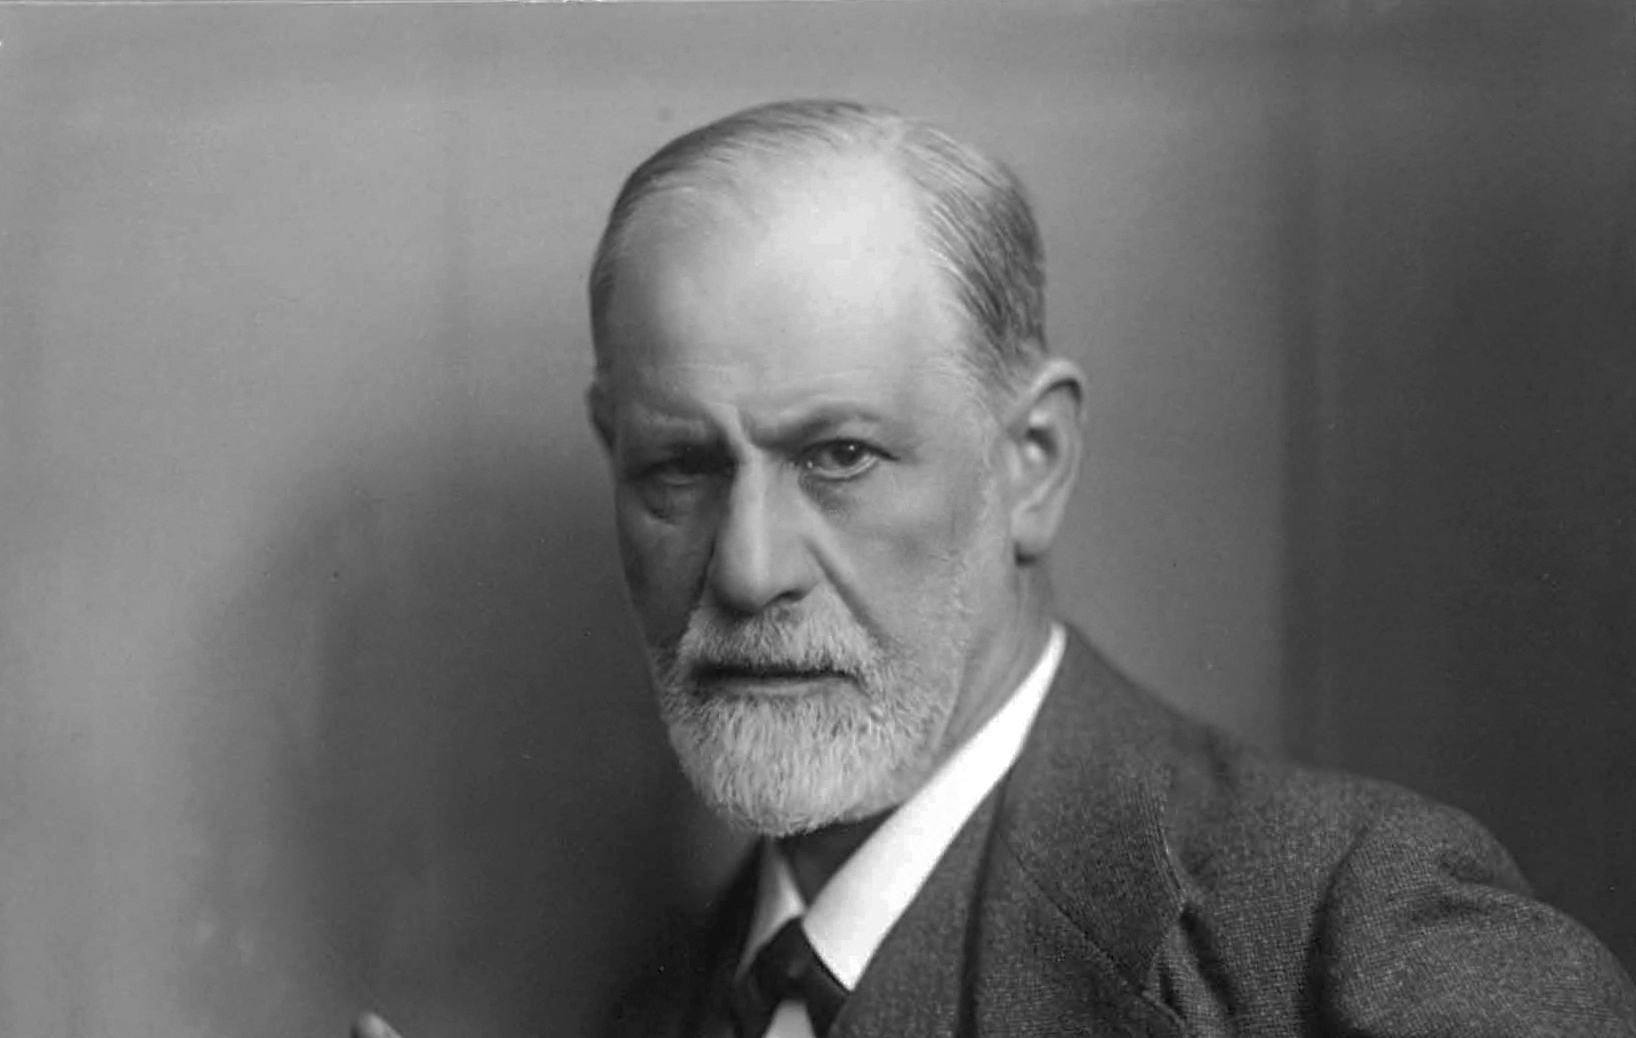 Sigmund Freud argued that humour was a way for people to release psychic energy pent up from repressed sexual and violent thoughts